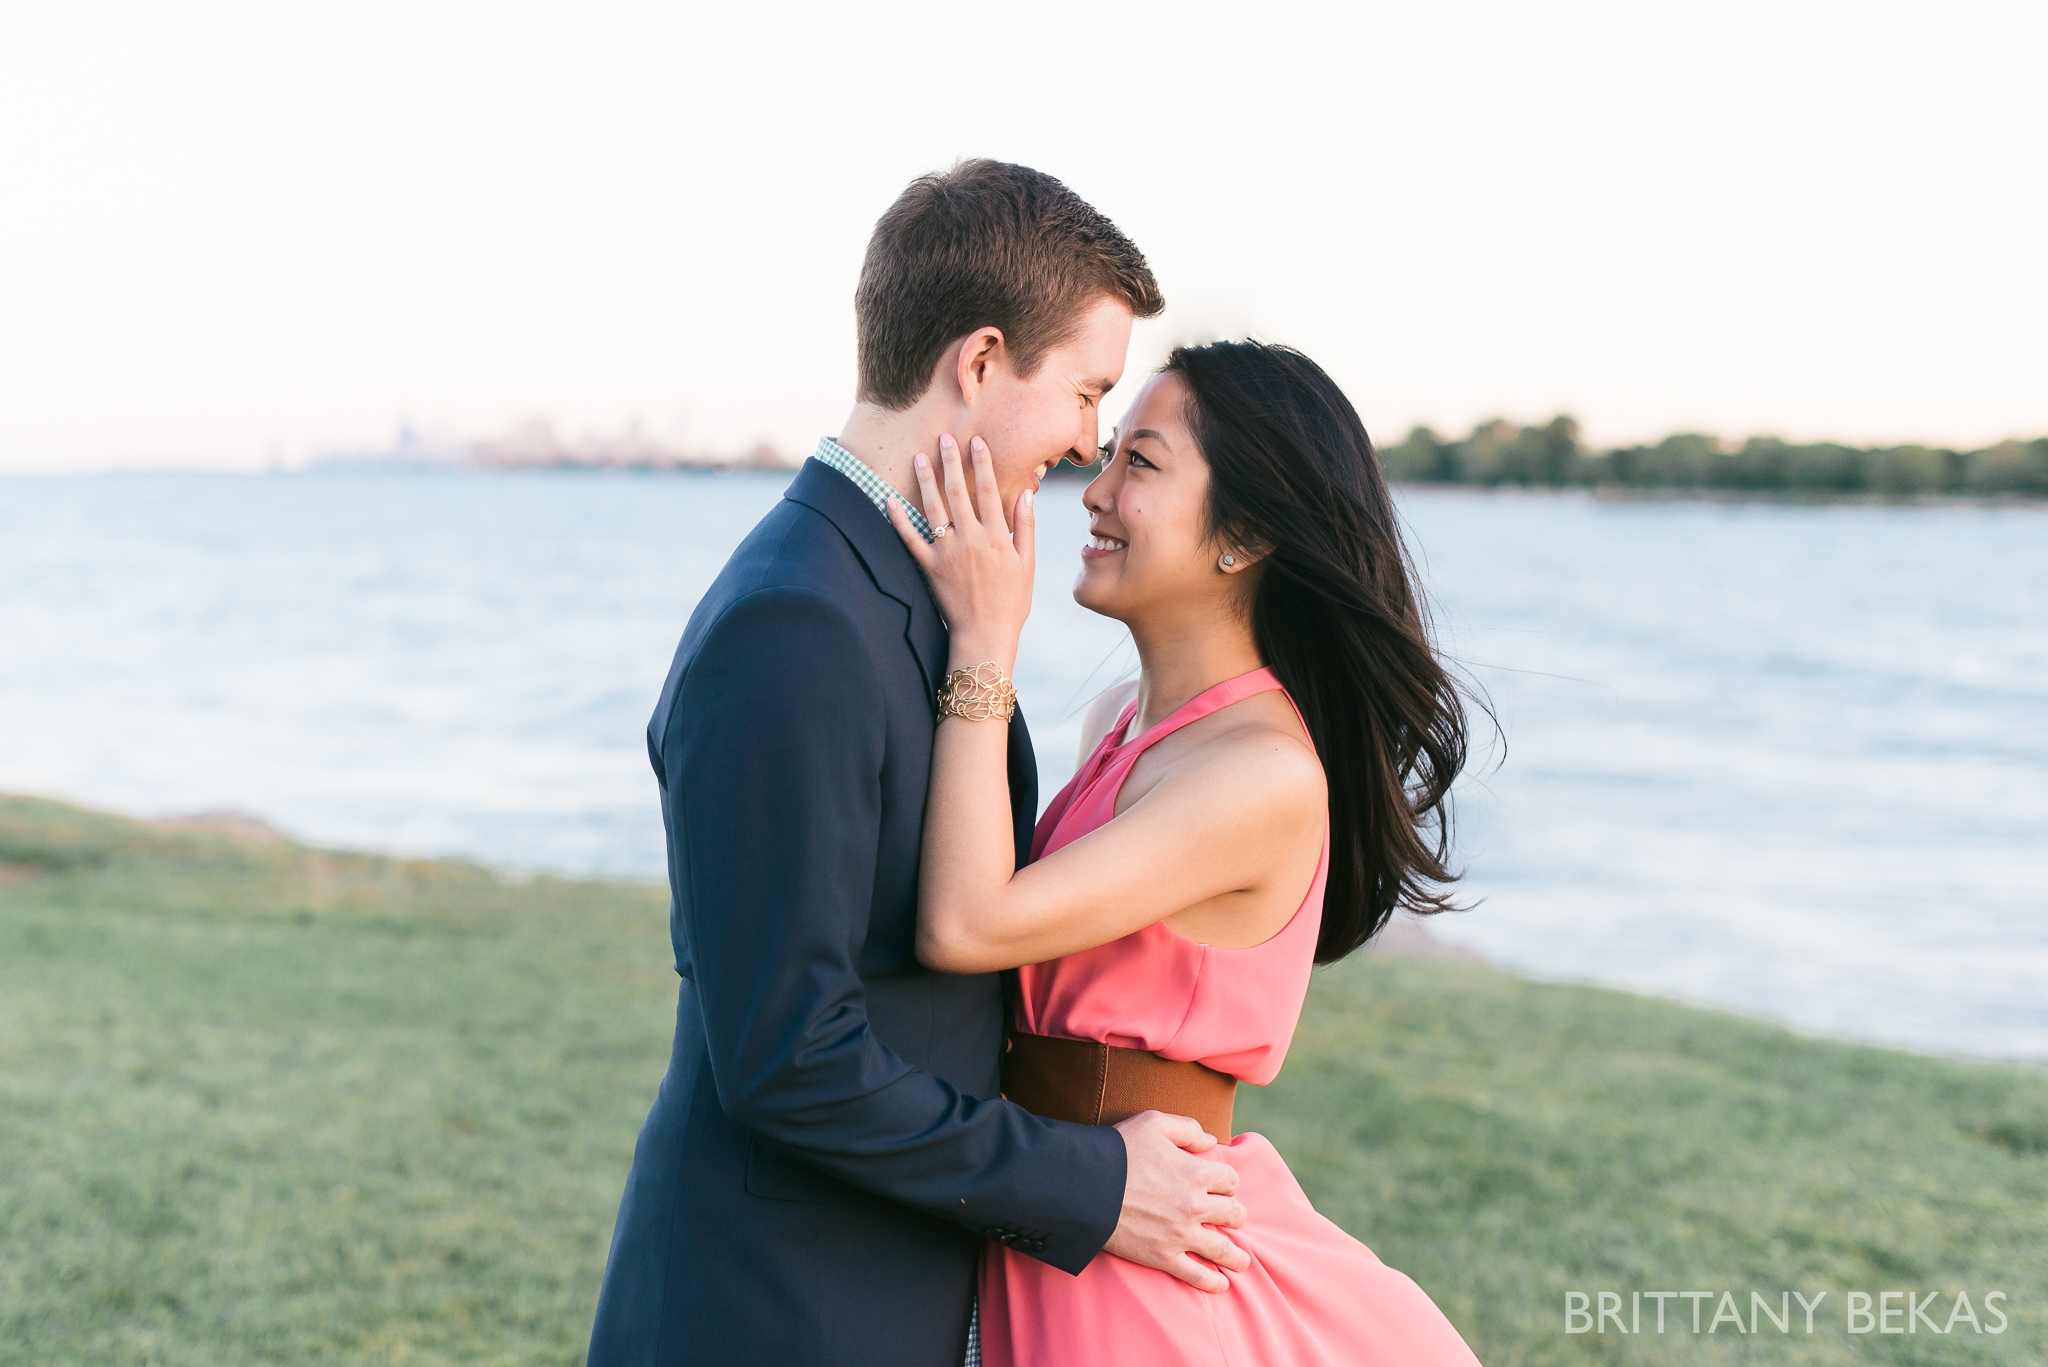 Northwestern Engagement Photos - Brittany Bekas Photography_0006